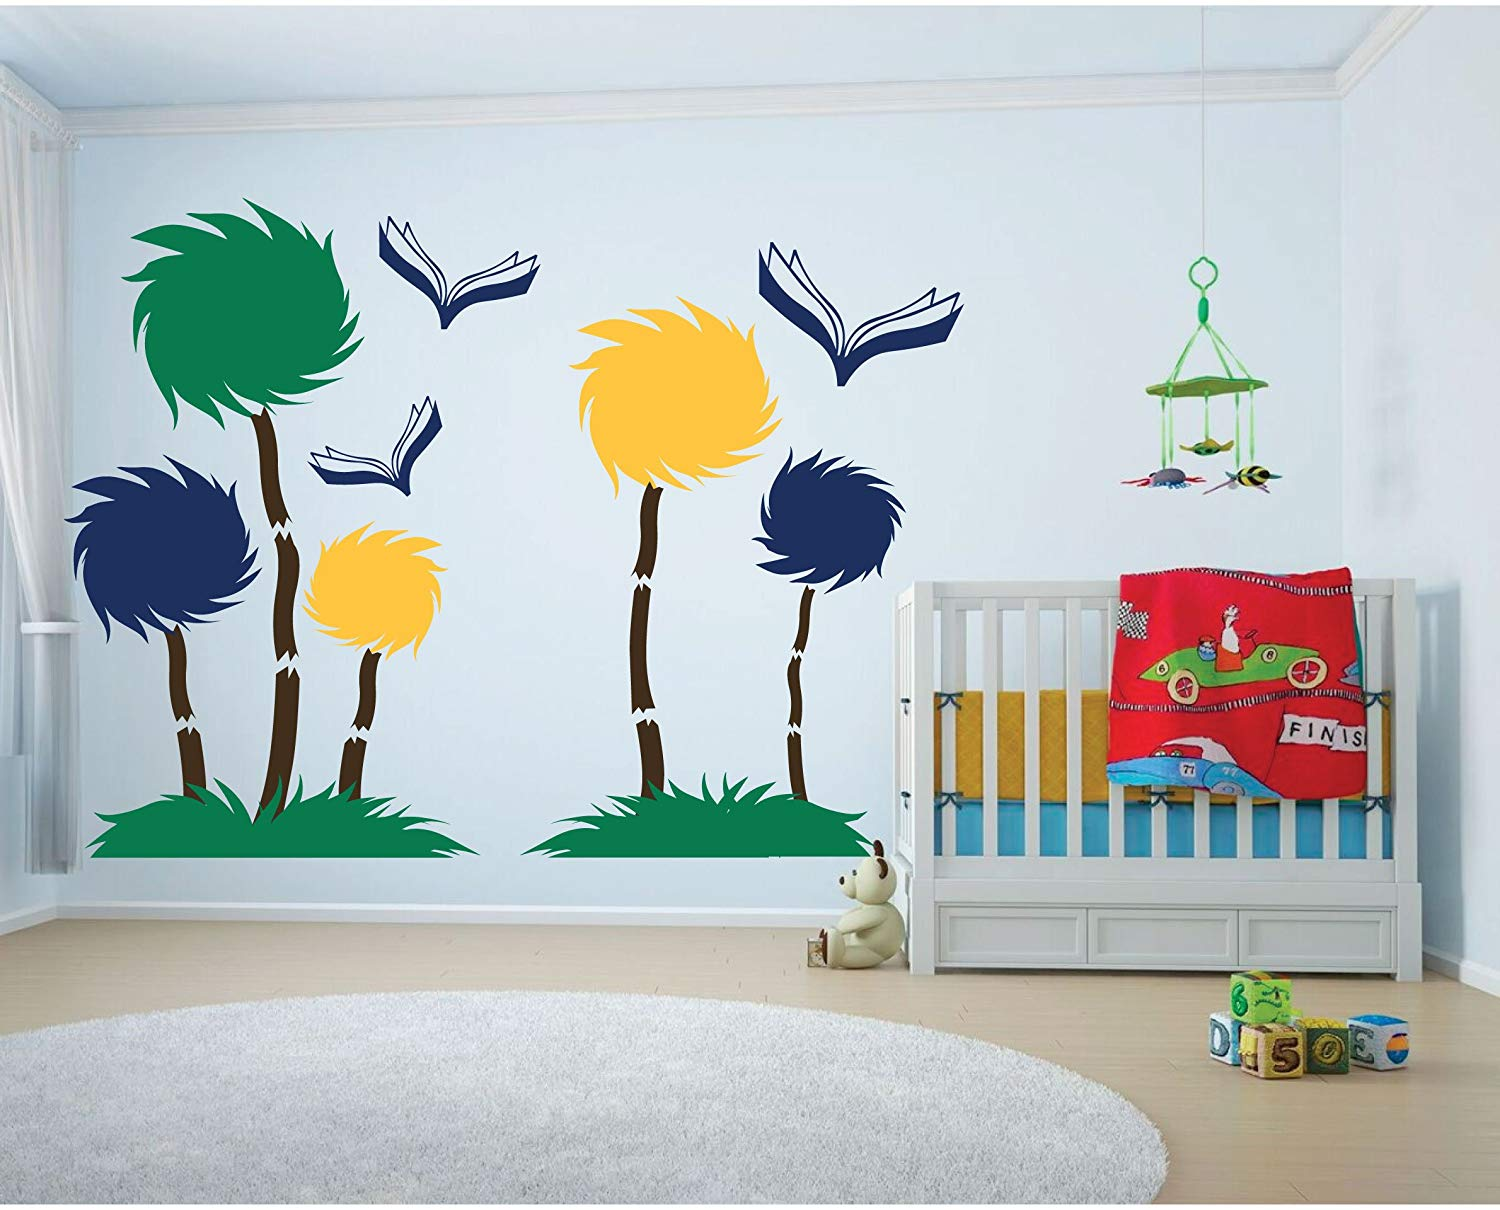 Get Quotations Dr Seuss Decoration Vinyl Wall Decor Full Mural Tufted Trees Nursery